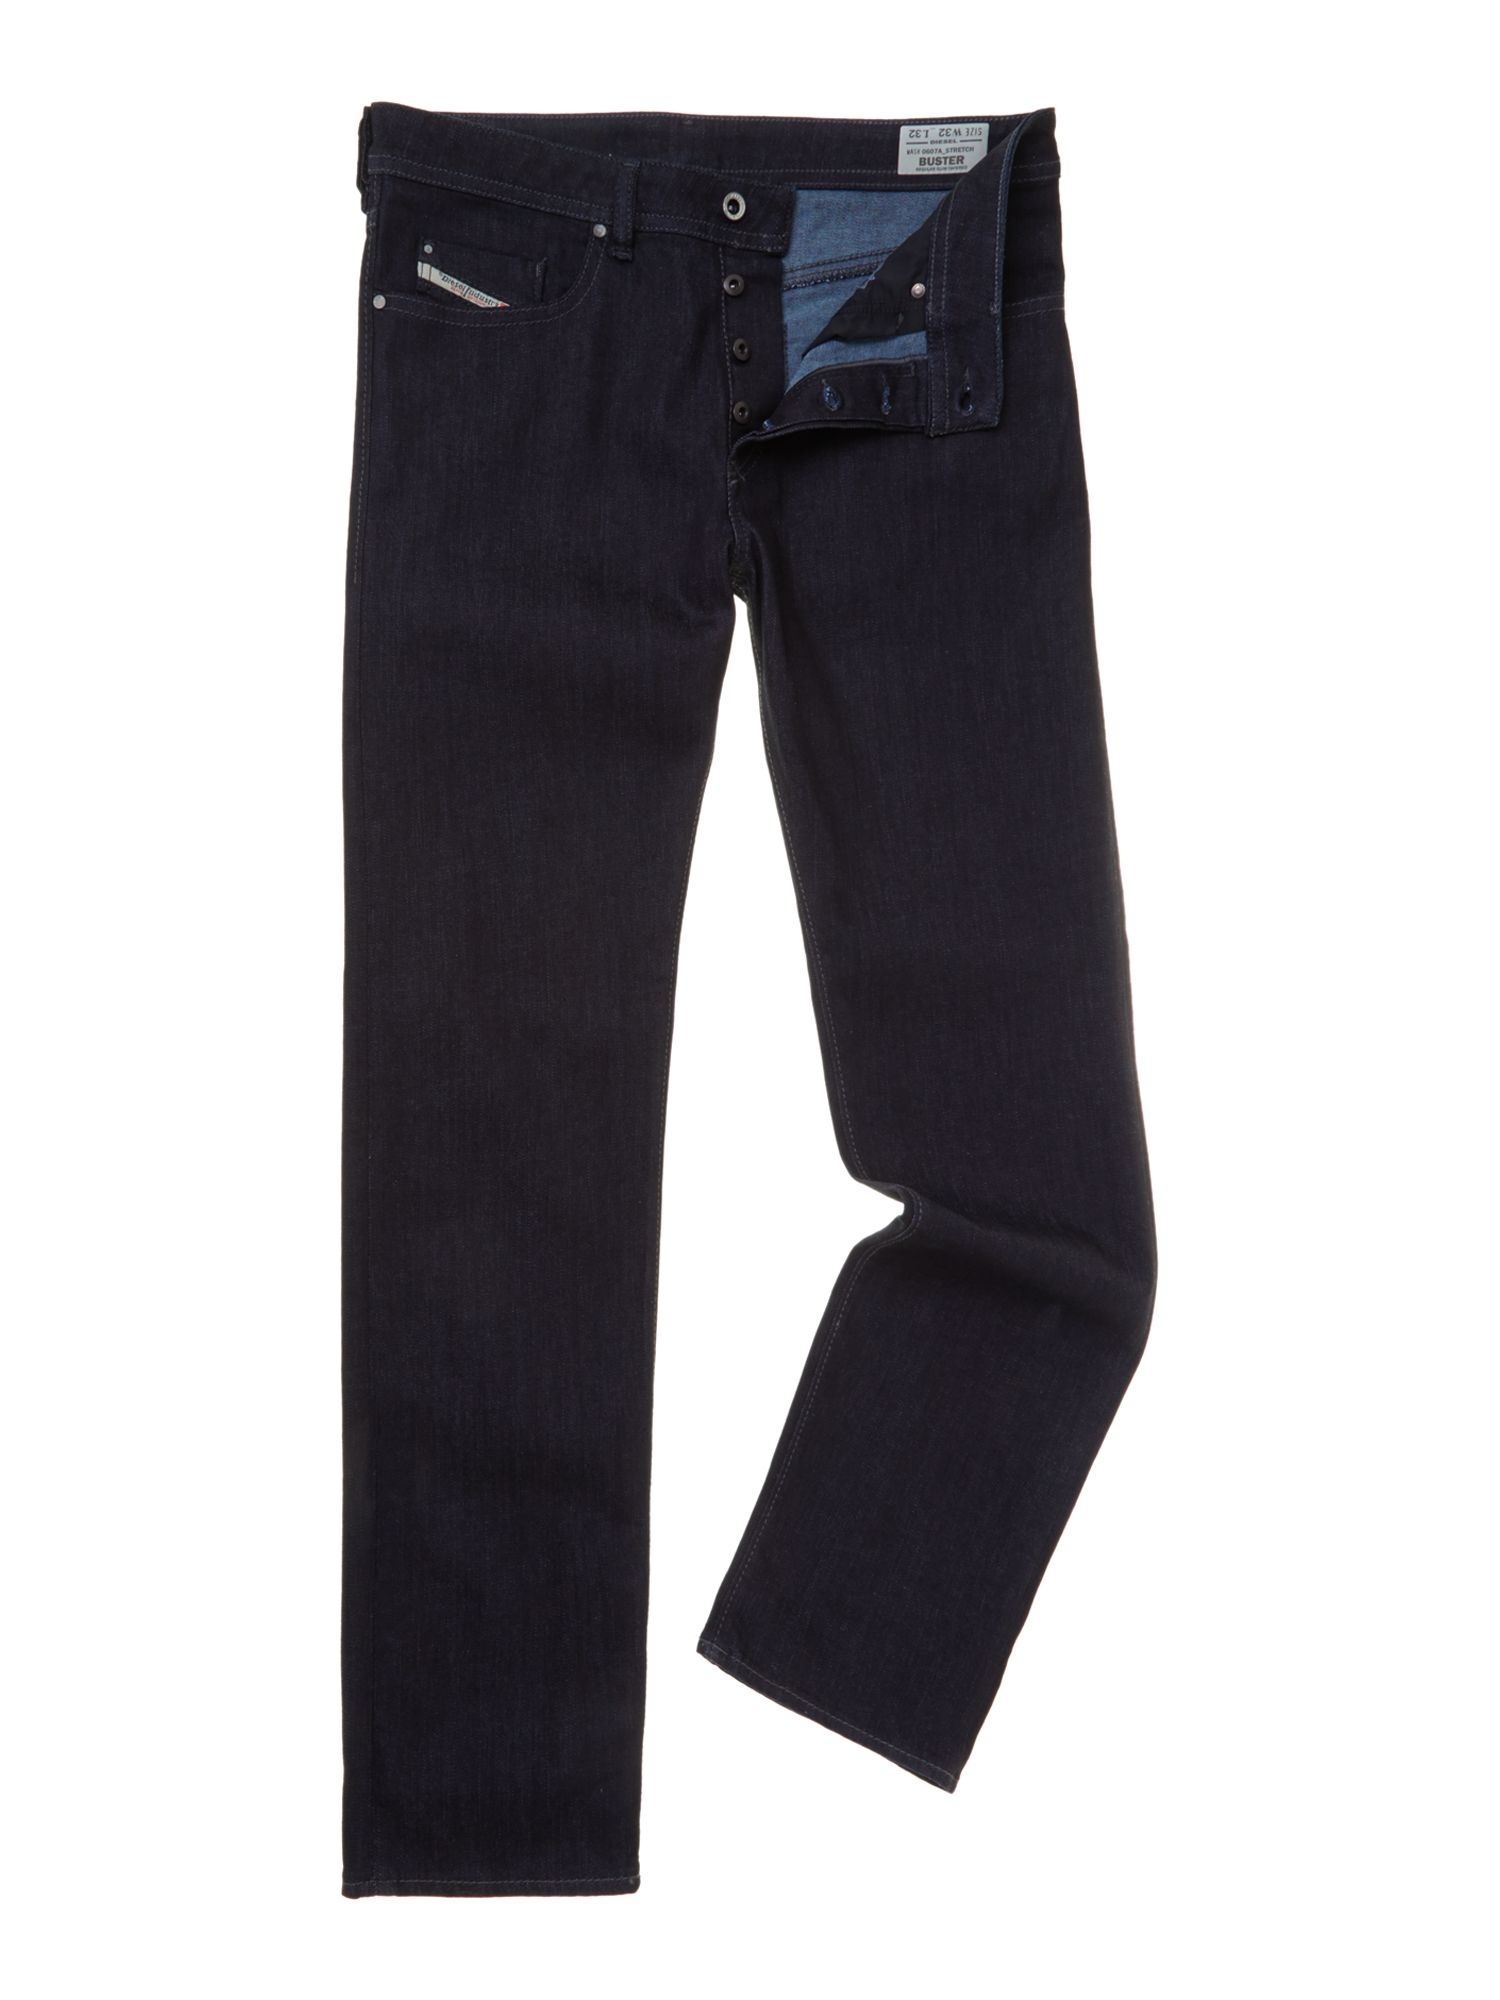 Mens Buster 607a Slim Tapered Fit Stretch Jeans, Denim Indigo